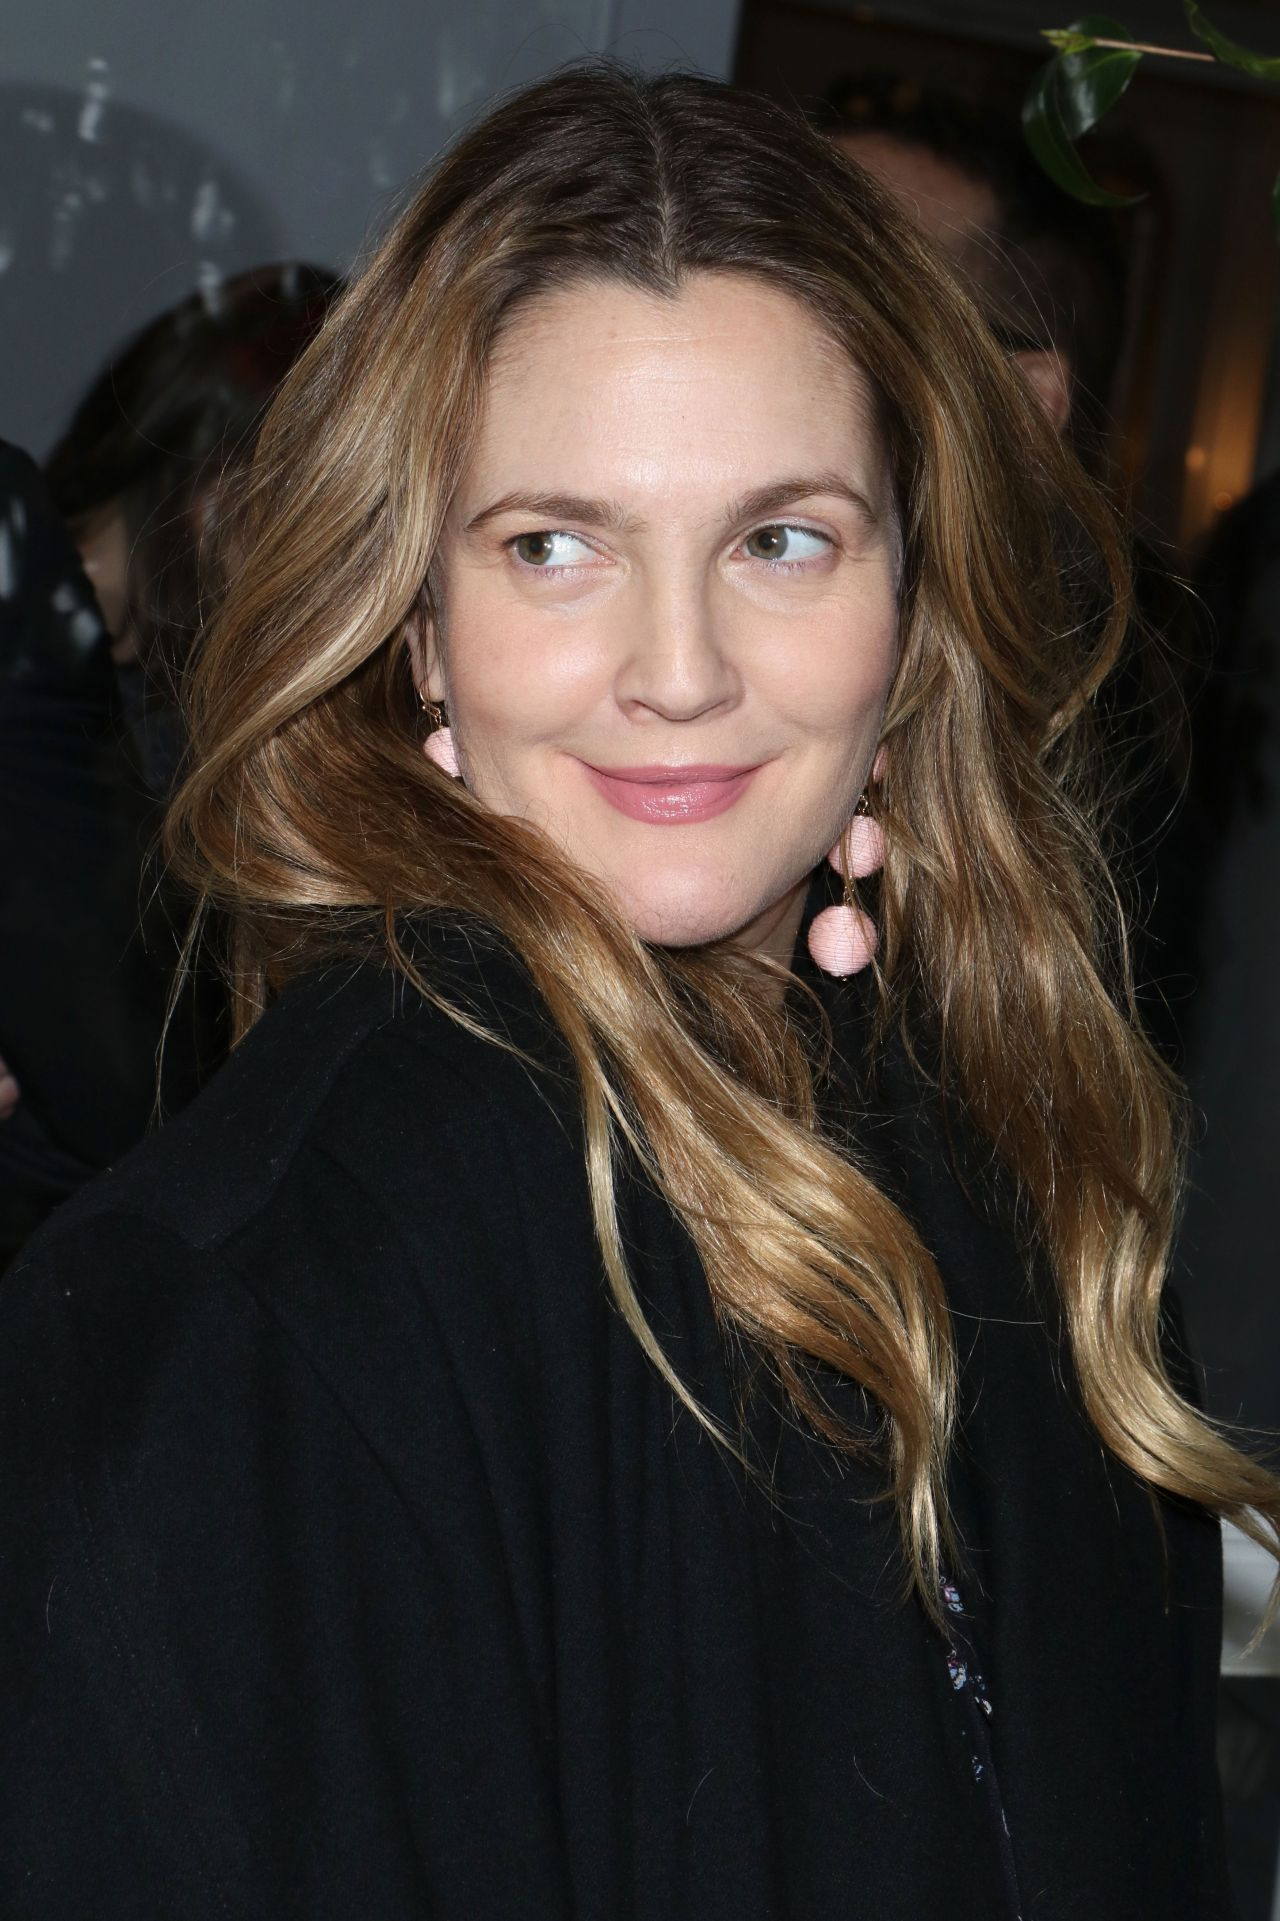 Drew Barrymore Club Monaco Fashion Presentation In New